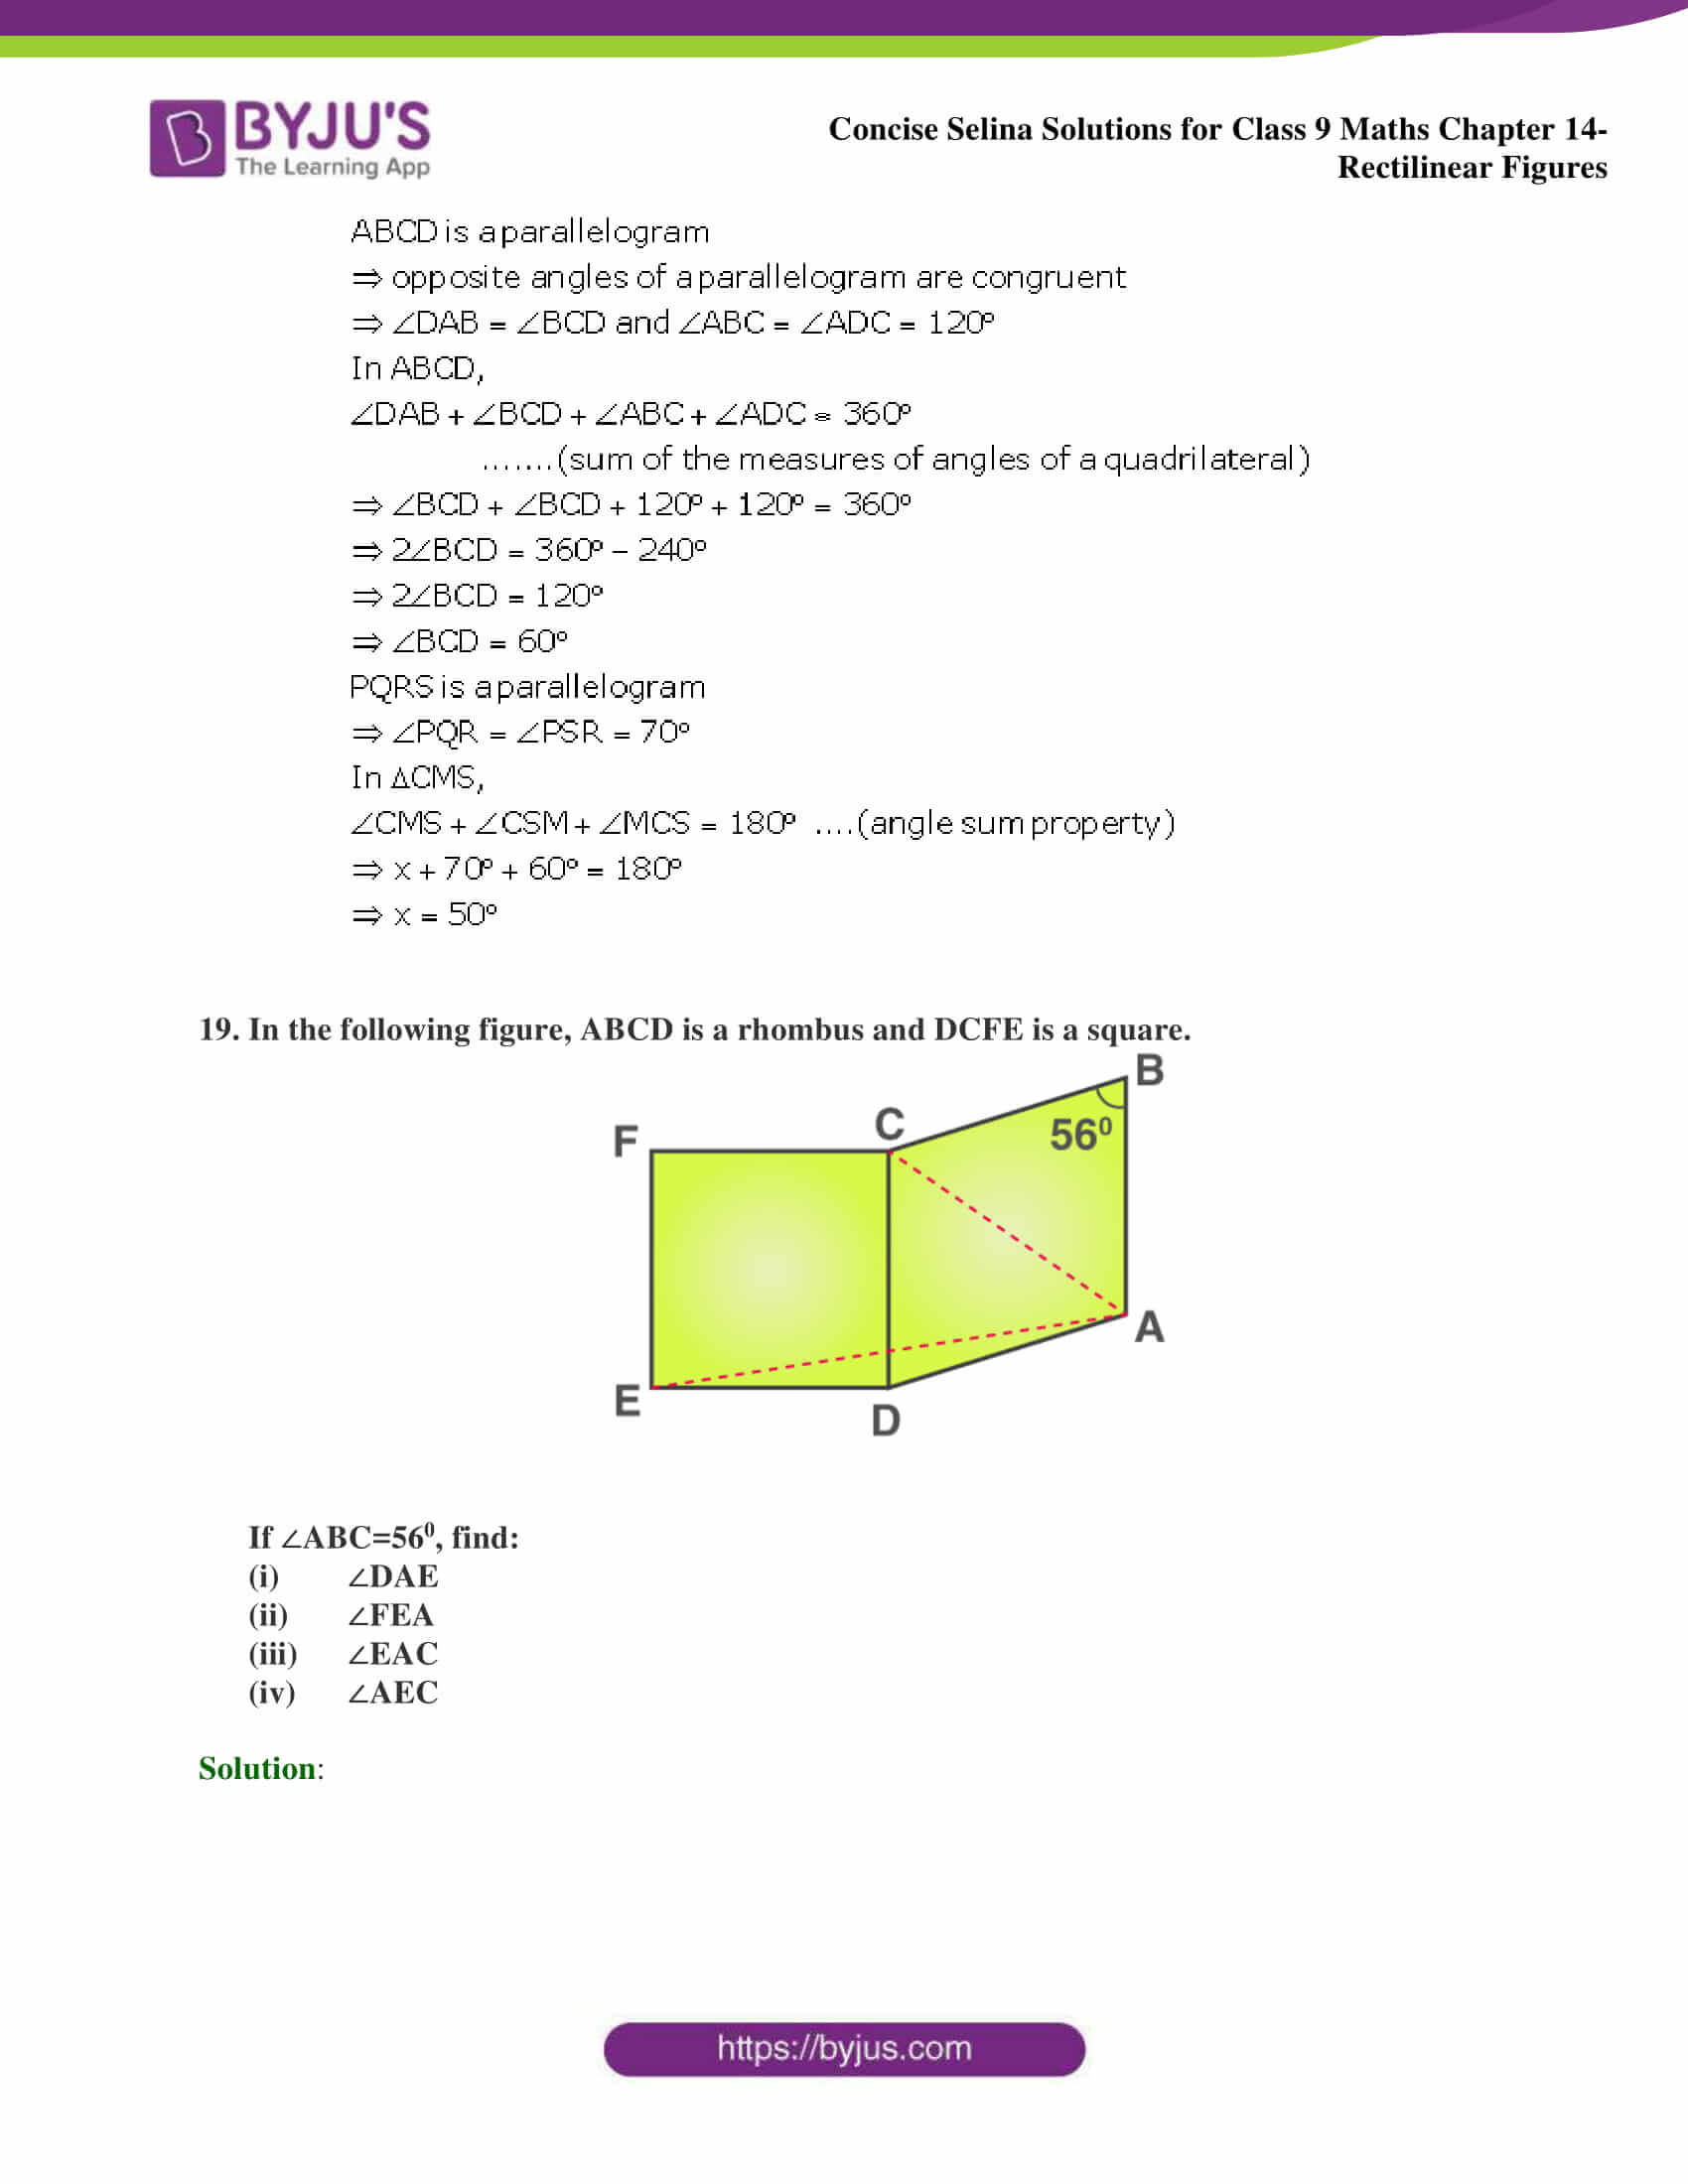 selina Solutions for Class 9 Maths Chapter 14 part 32